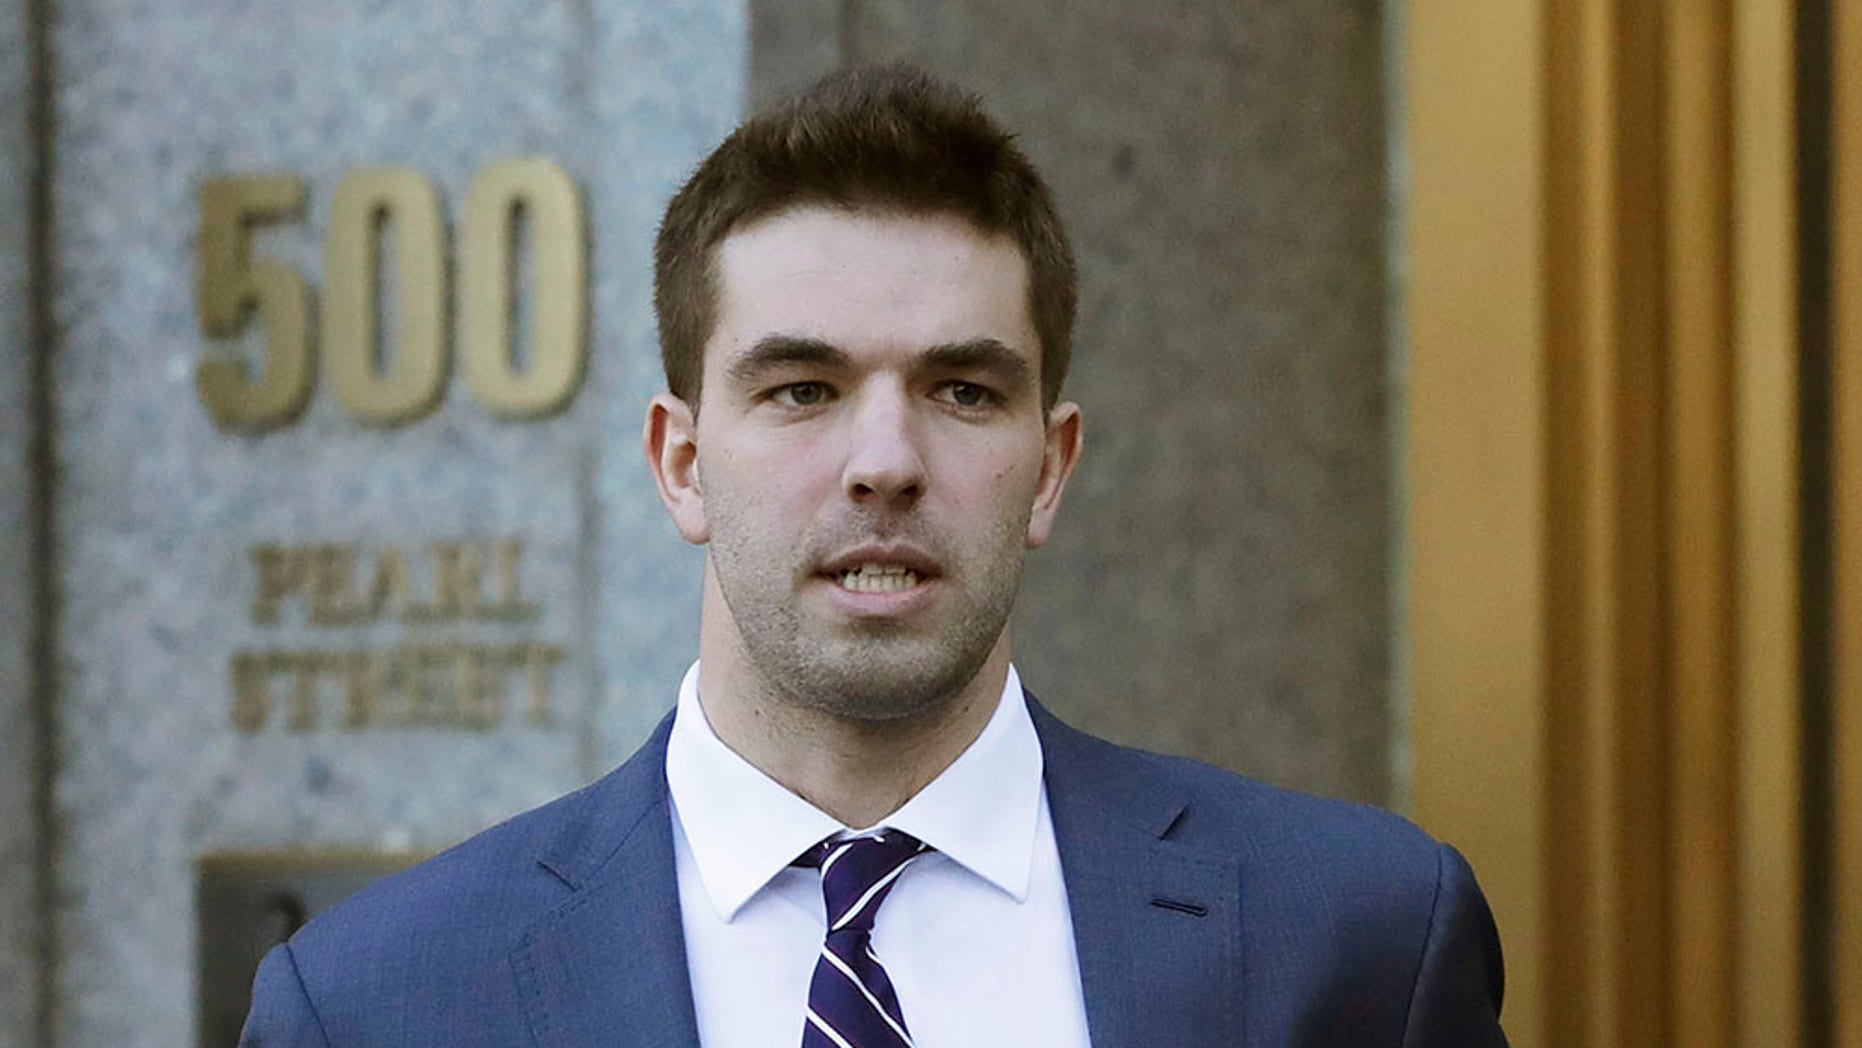 "FILE - In this March 6, 2018 file photo, Billy McFarland, the promoter of the failed Fyre Festival in the Bahamas, leaves federal court after pleading guilty to wire fraud charges in New York. A federal judge has given McFarland a six-year prison term. McFarland was sentenced Thursday, Oct. 11 in Manhattan federal court. Judge Naomi Reice Buchwald called him a ""serial fraudster."""